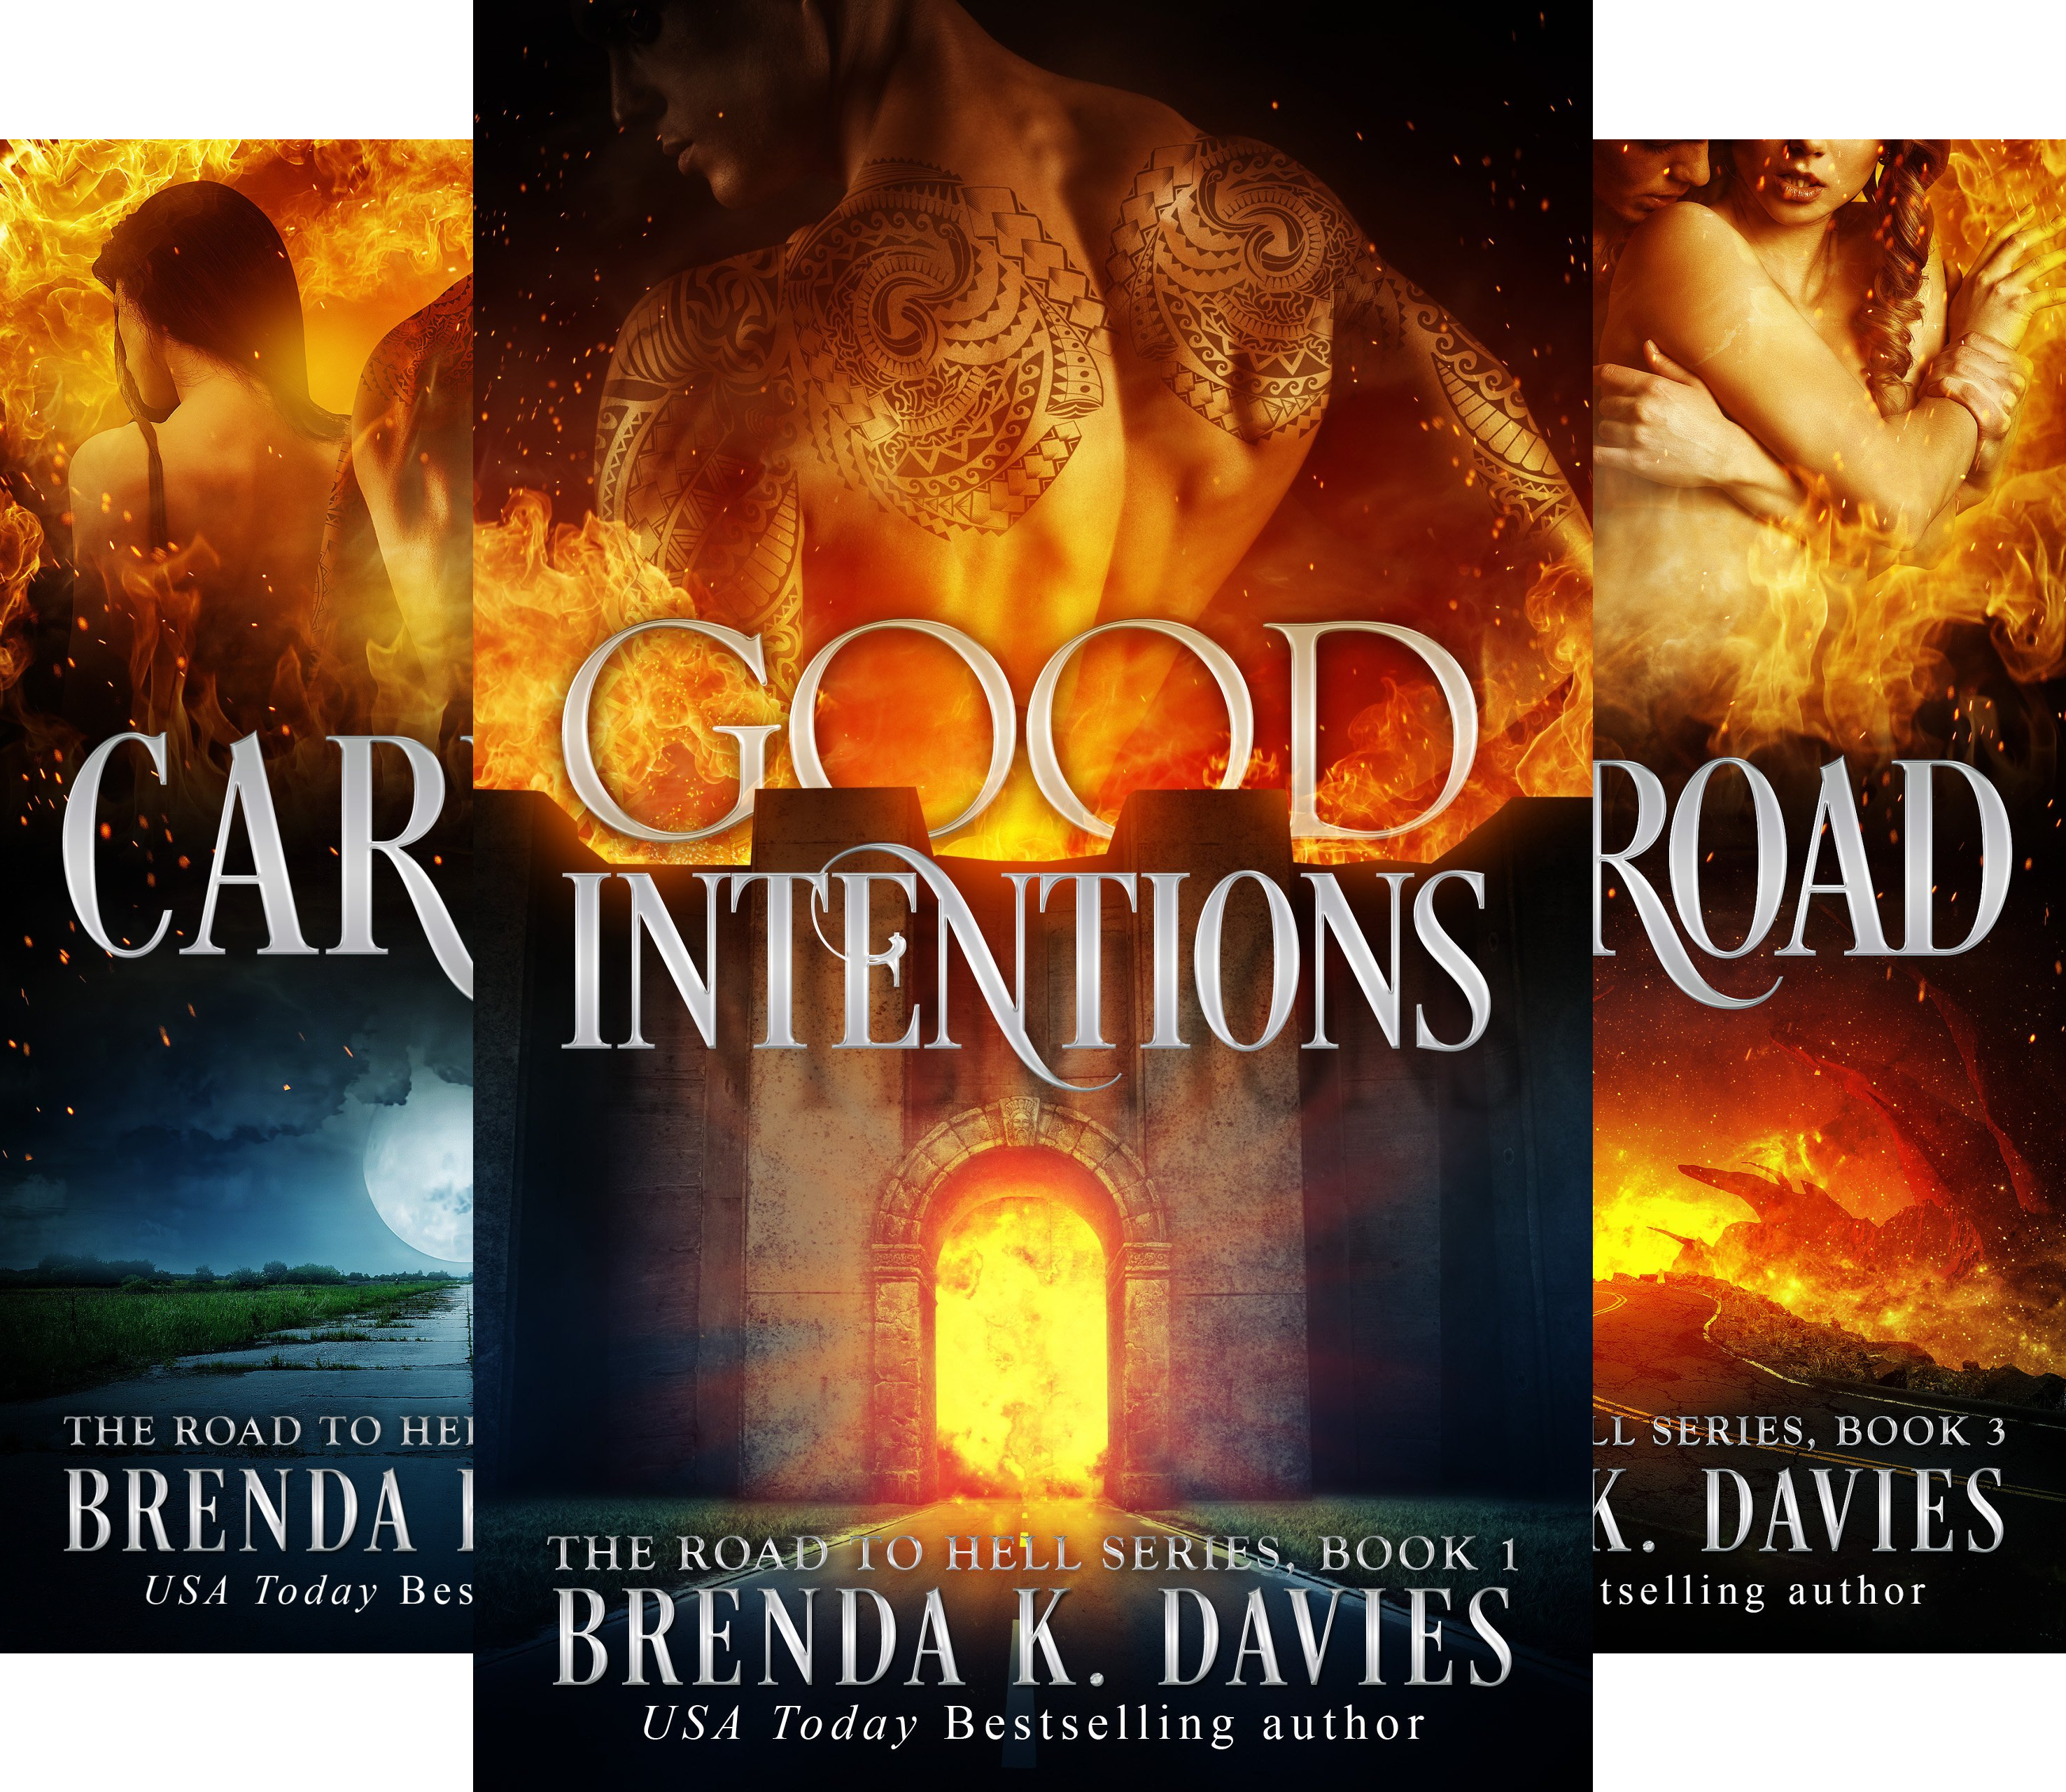 The Road to Hell Series (4 Book Series)